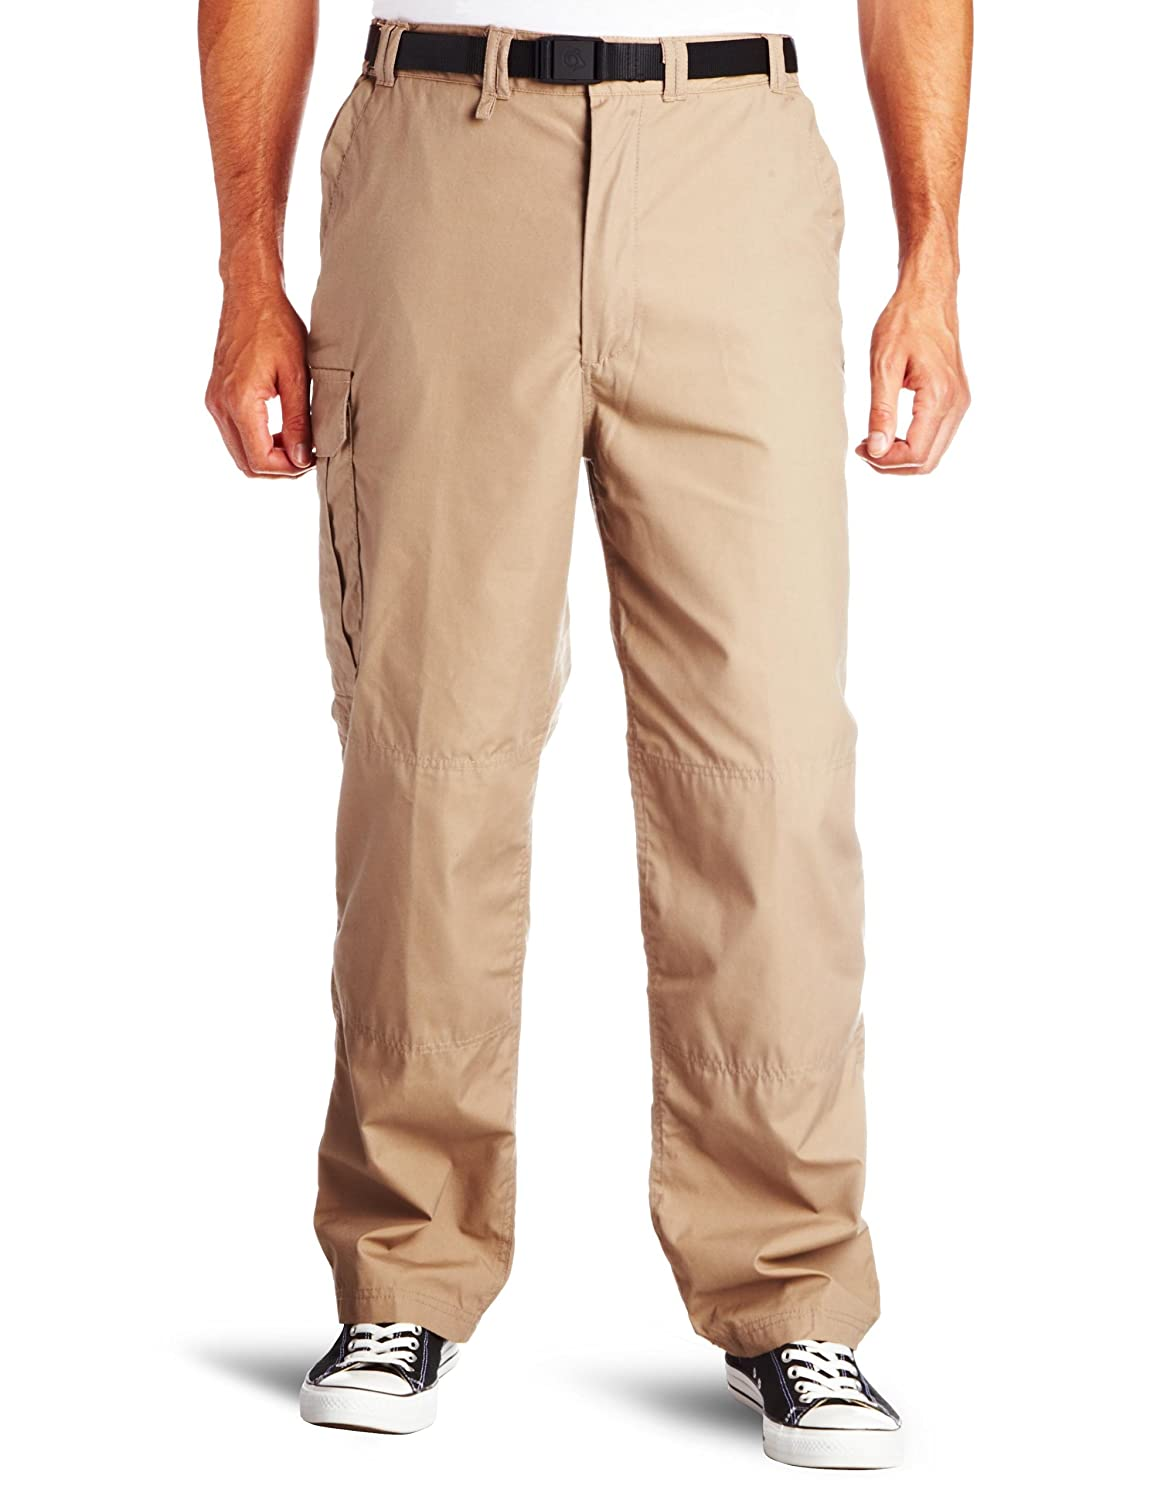 Craghoppers Men's Classic Kiwi Full Length Pants CMJ100S